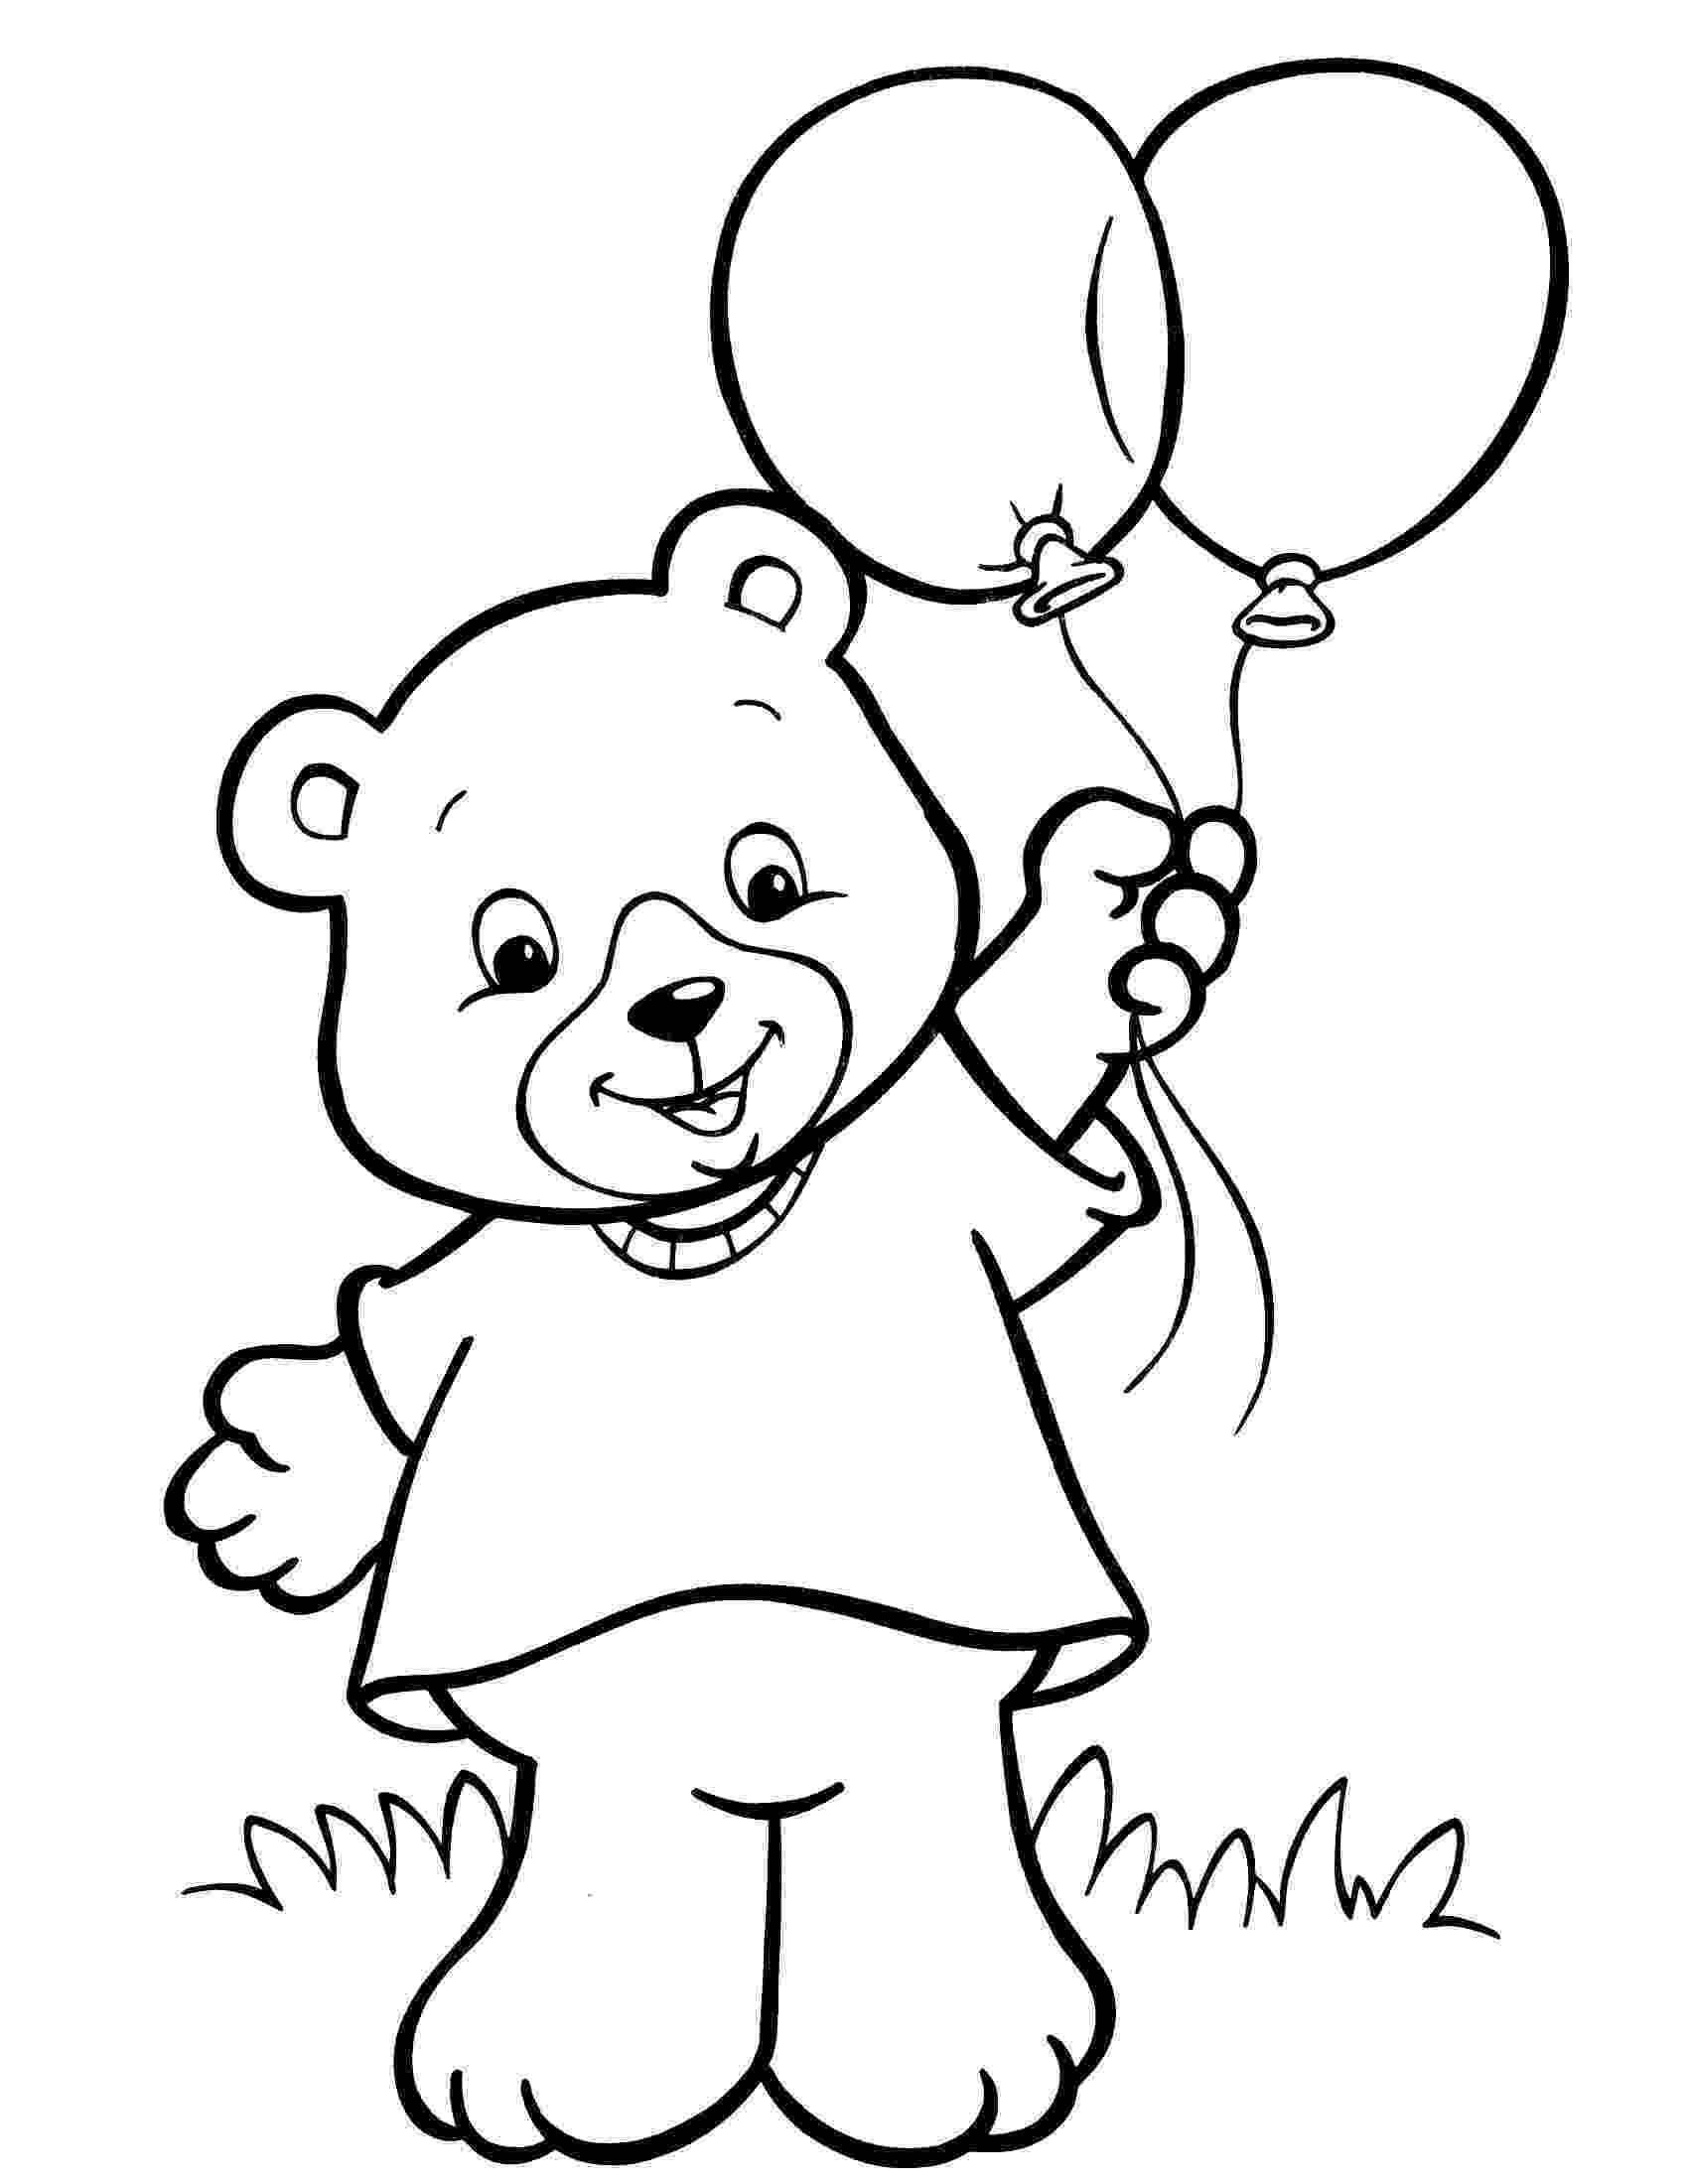 free colouring pages for 10 year olds coloring pages for 8910 year old girls to download and pages year colouring free olds 10 for